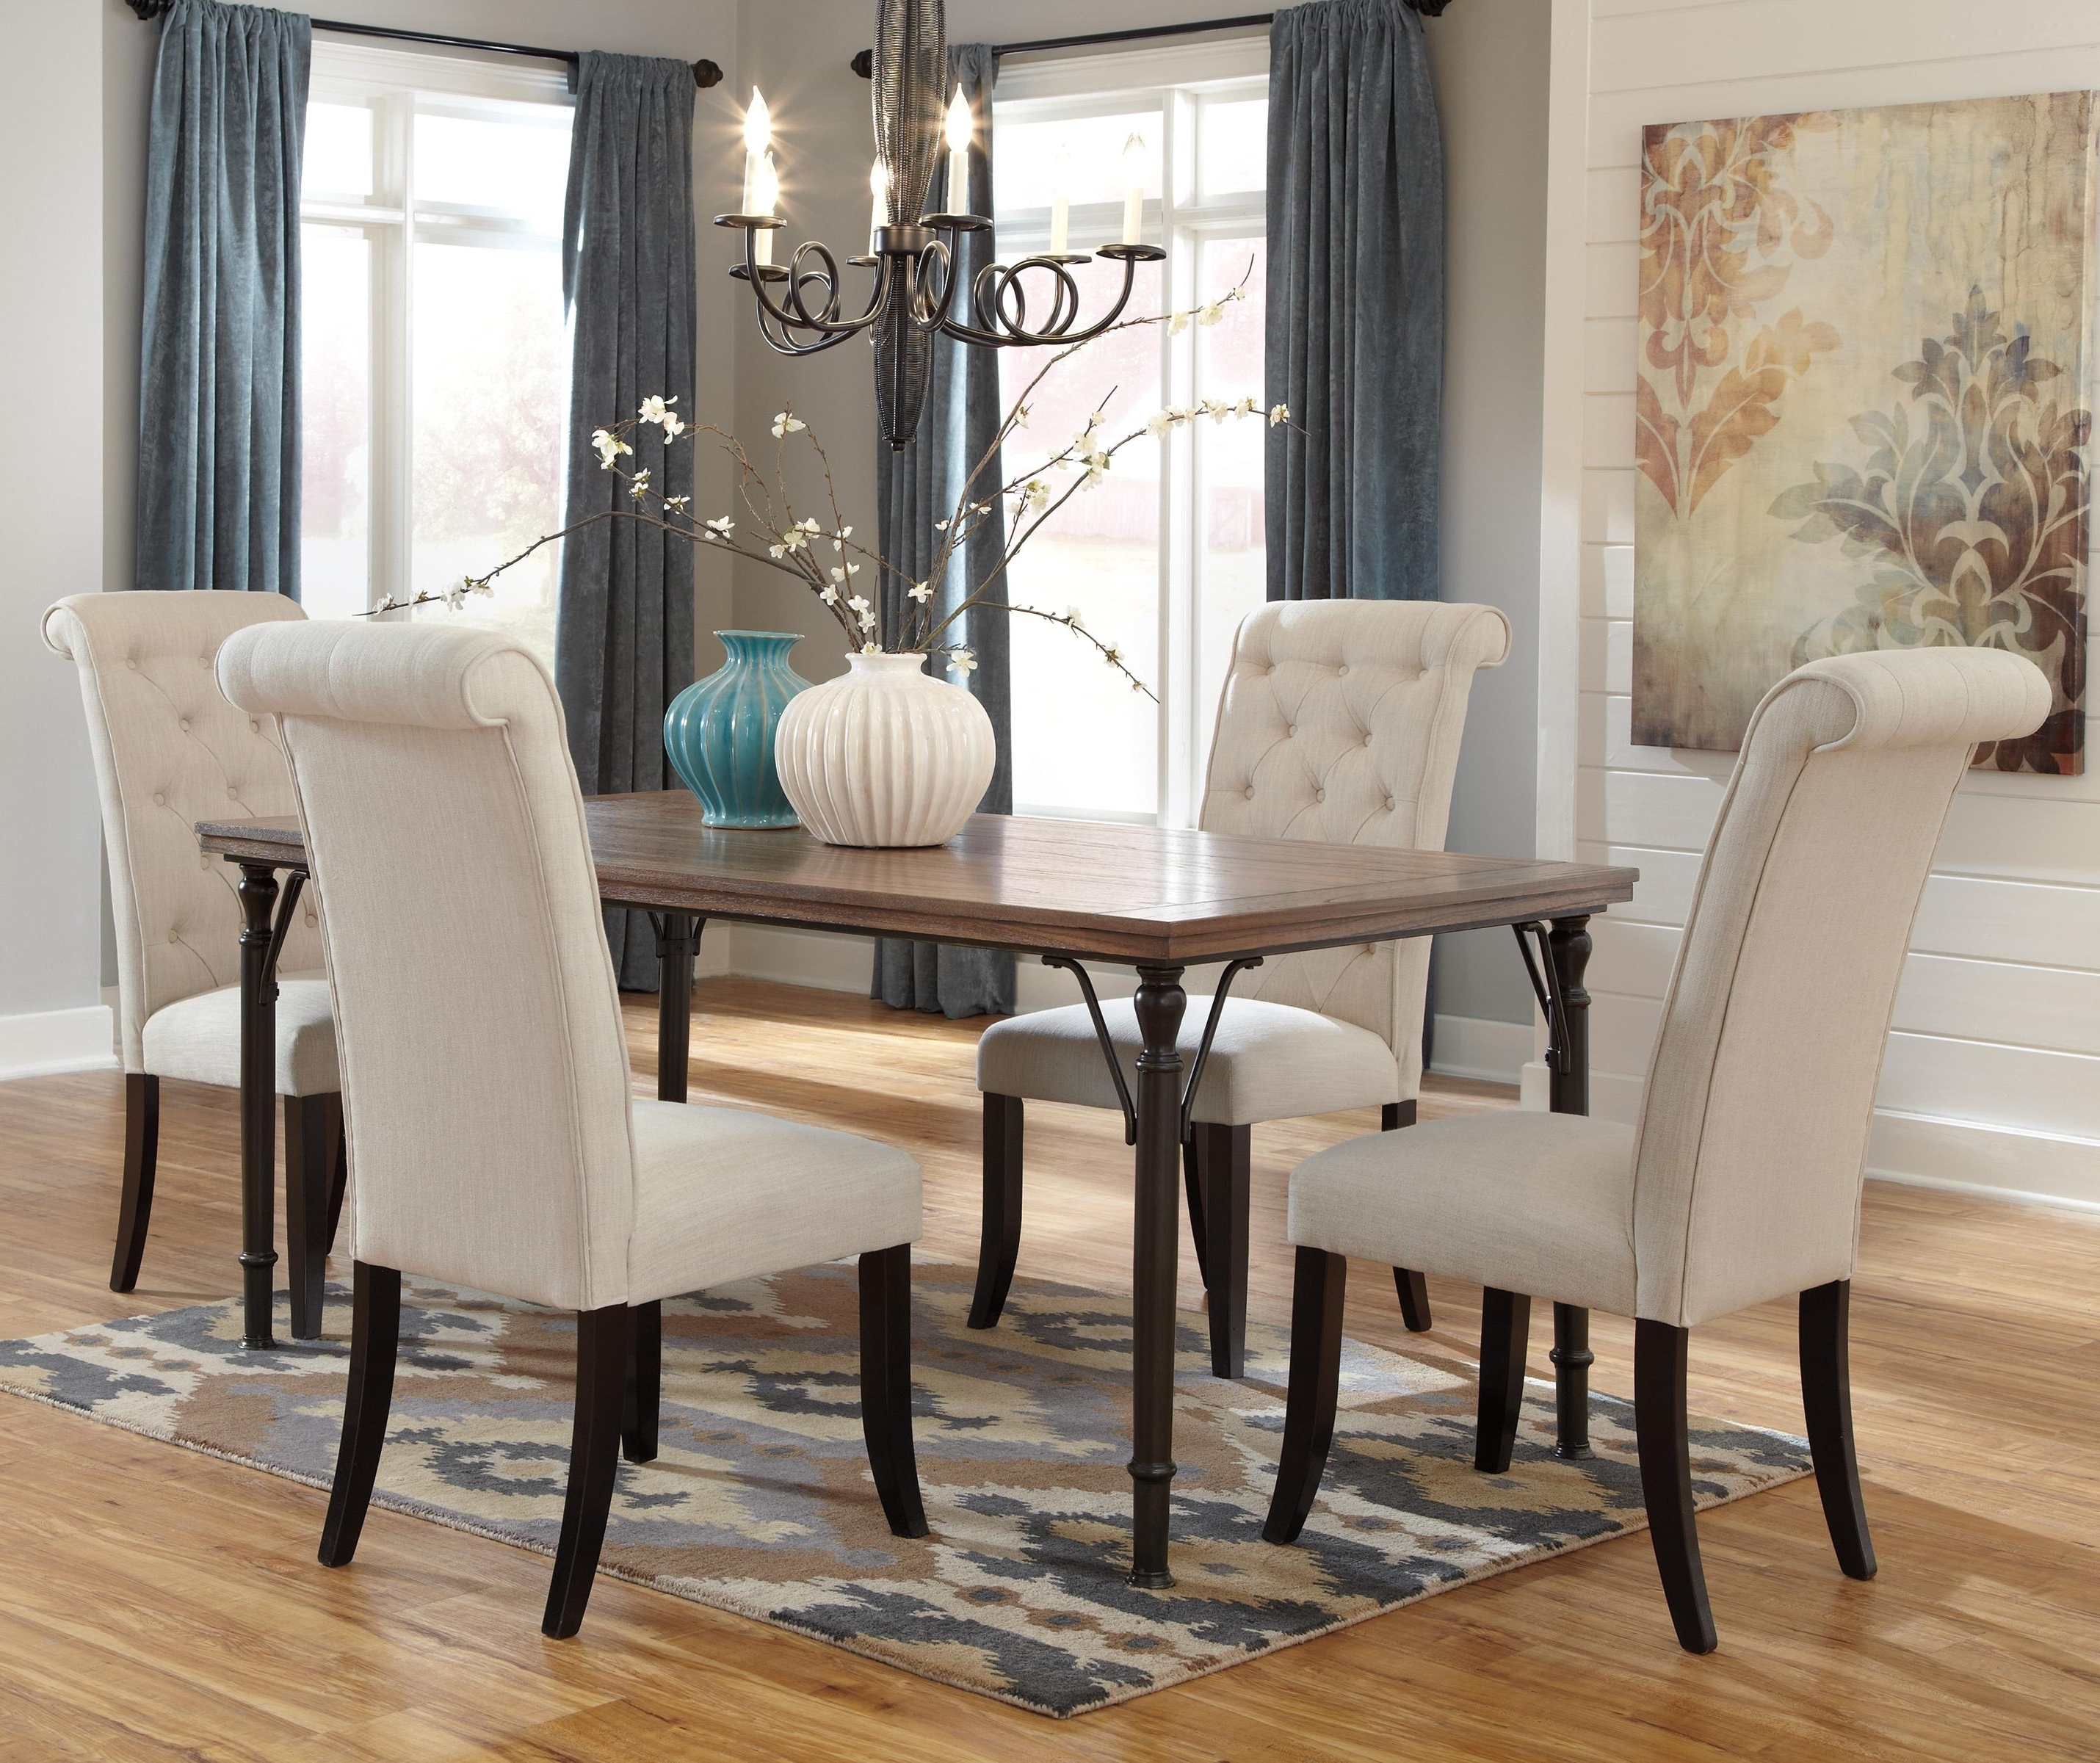 Ashley Signature Design Tripton 5 Piece Rectangular Dining Room With Regard To Recent Kitchen Dining Tables And Chairs (Gallery 8 of 25)